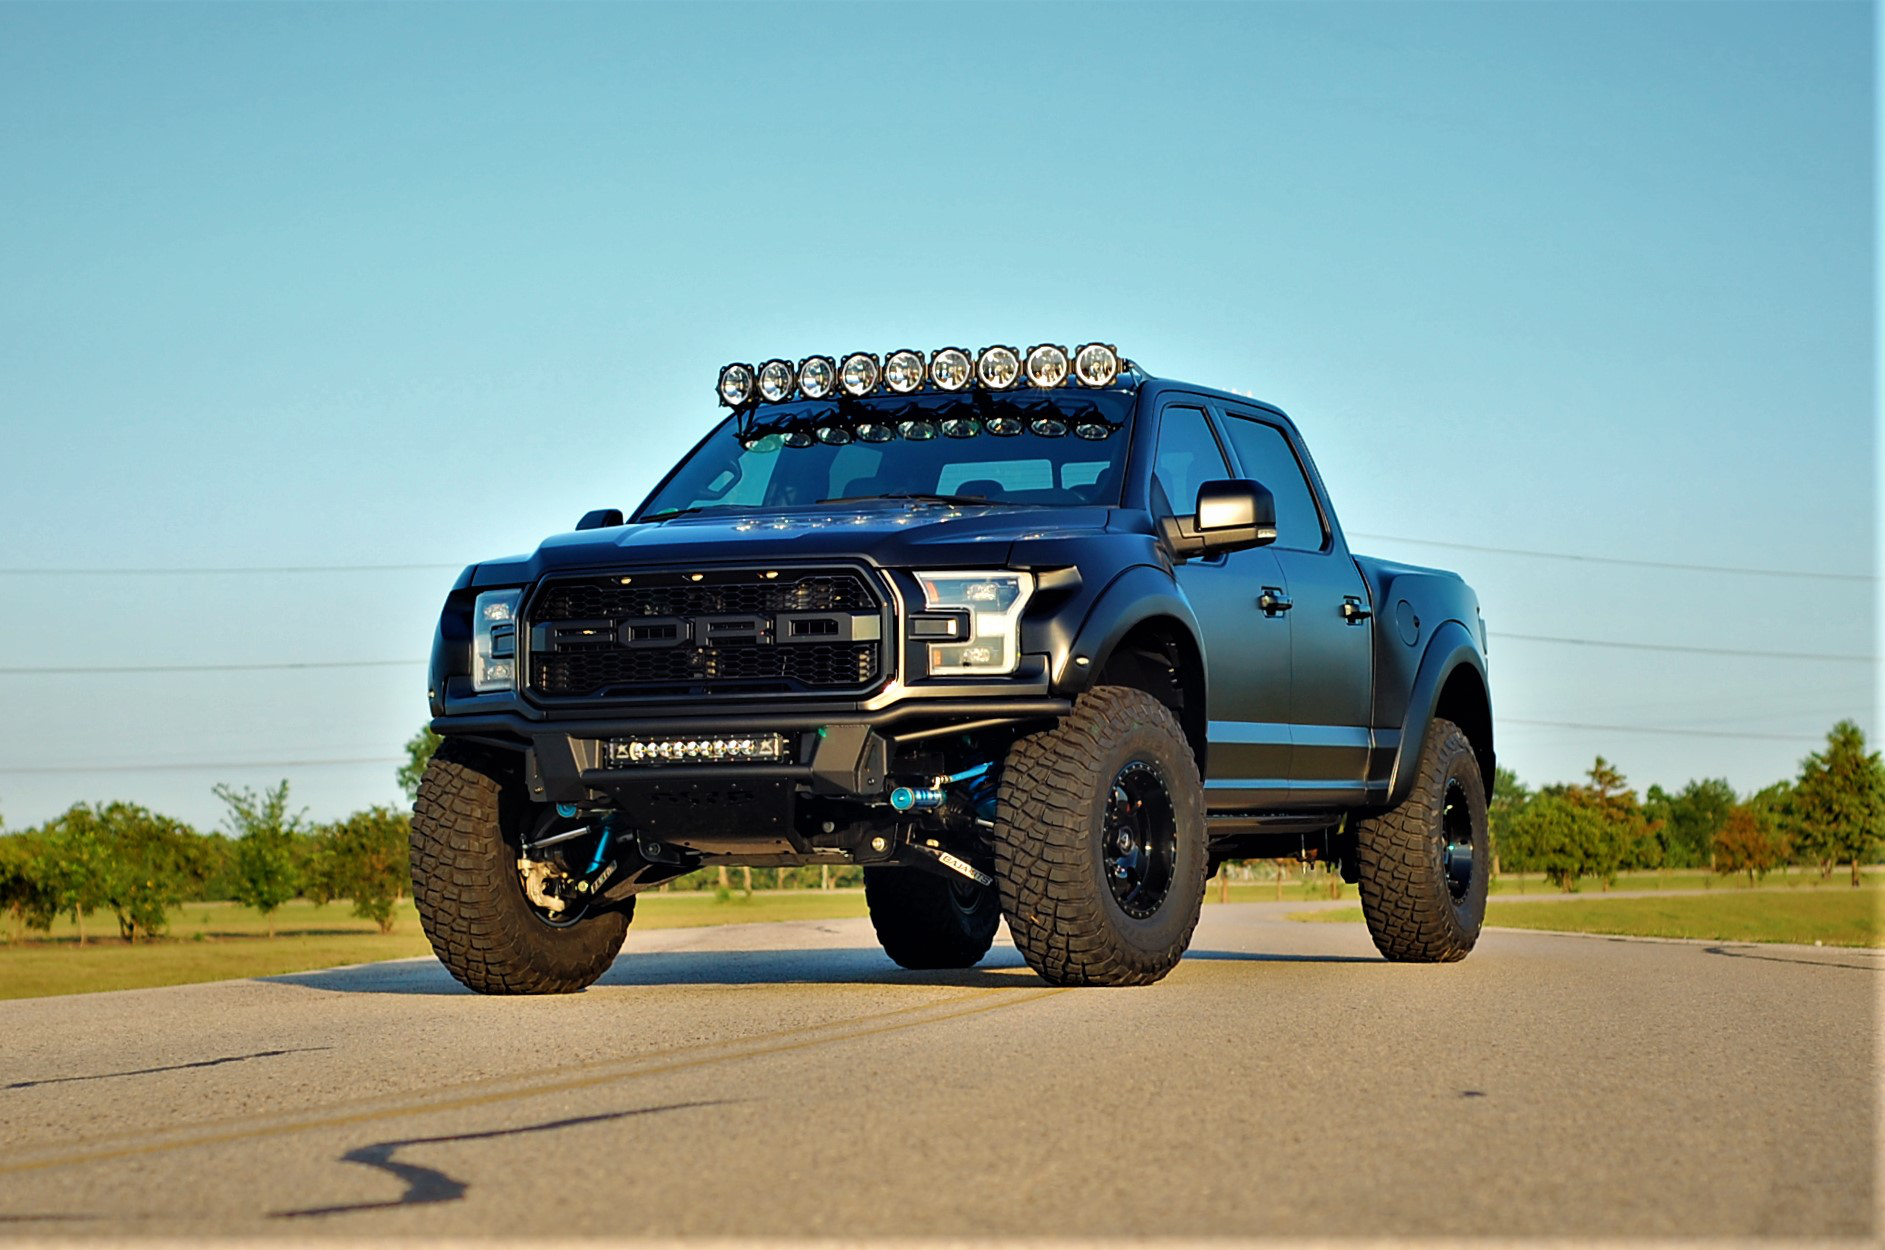 The Ultimate Ford F 150 Raptor Is A Supercharged Custom Build With 758 Hp Equipment World